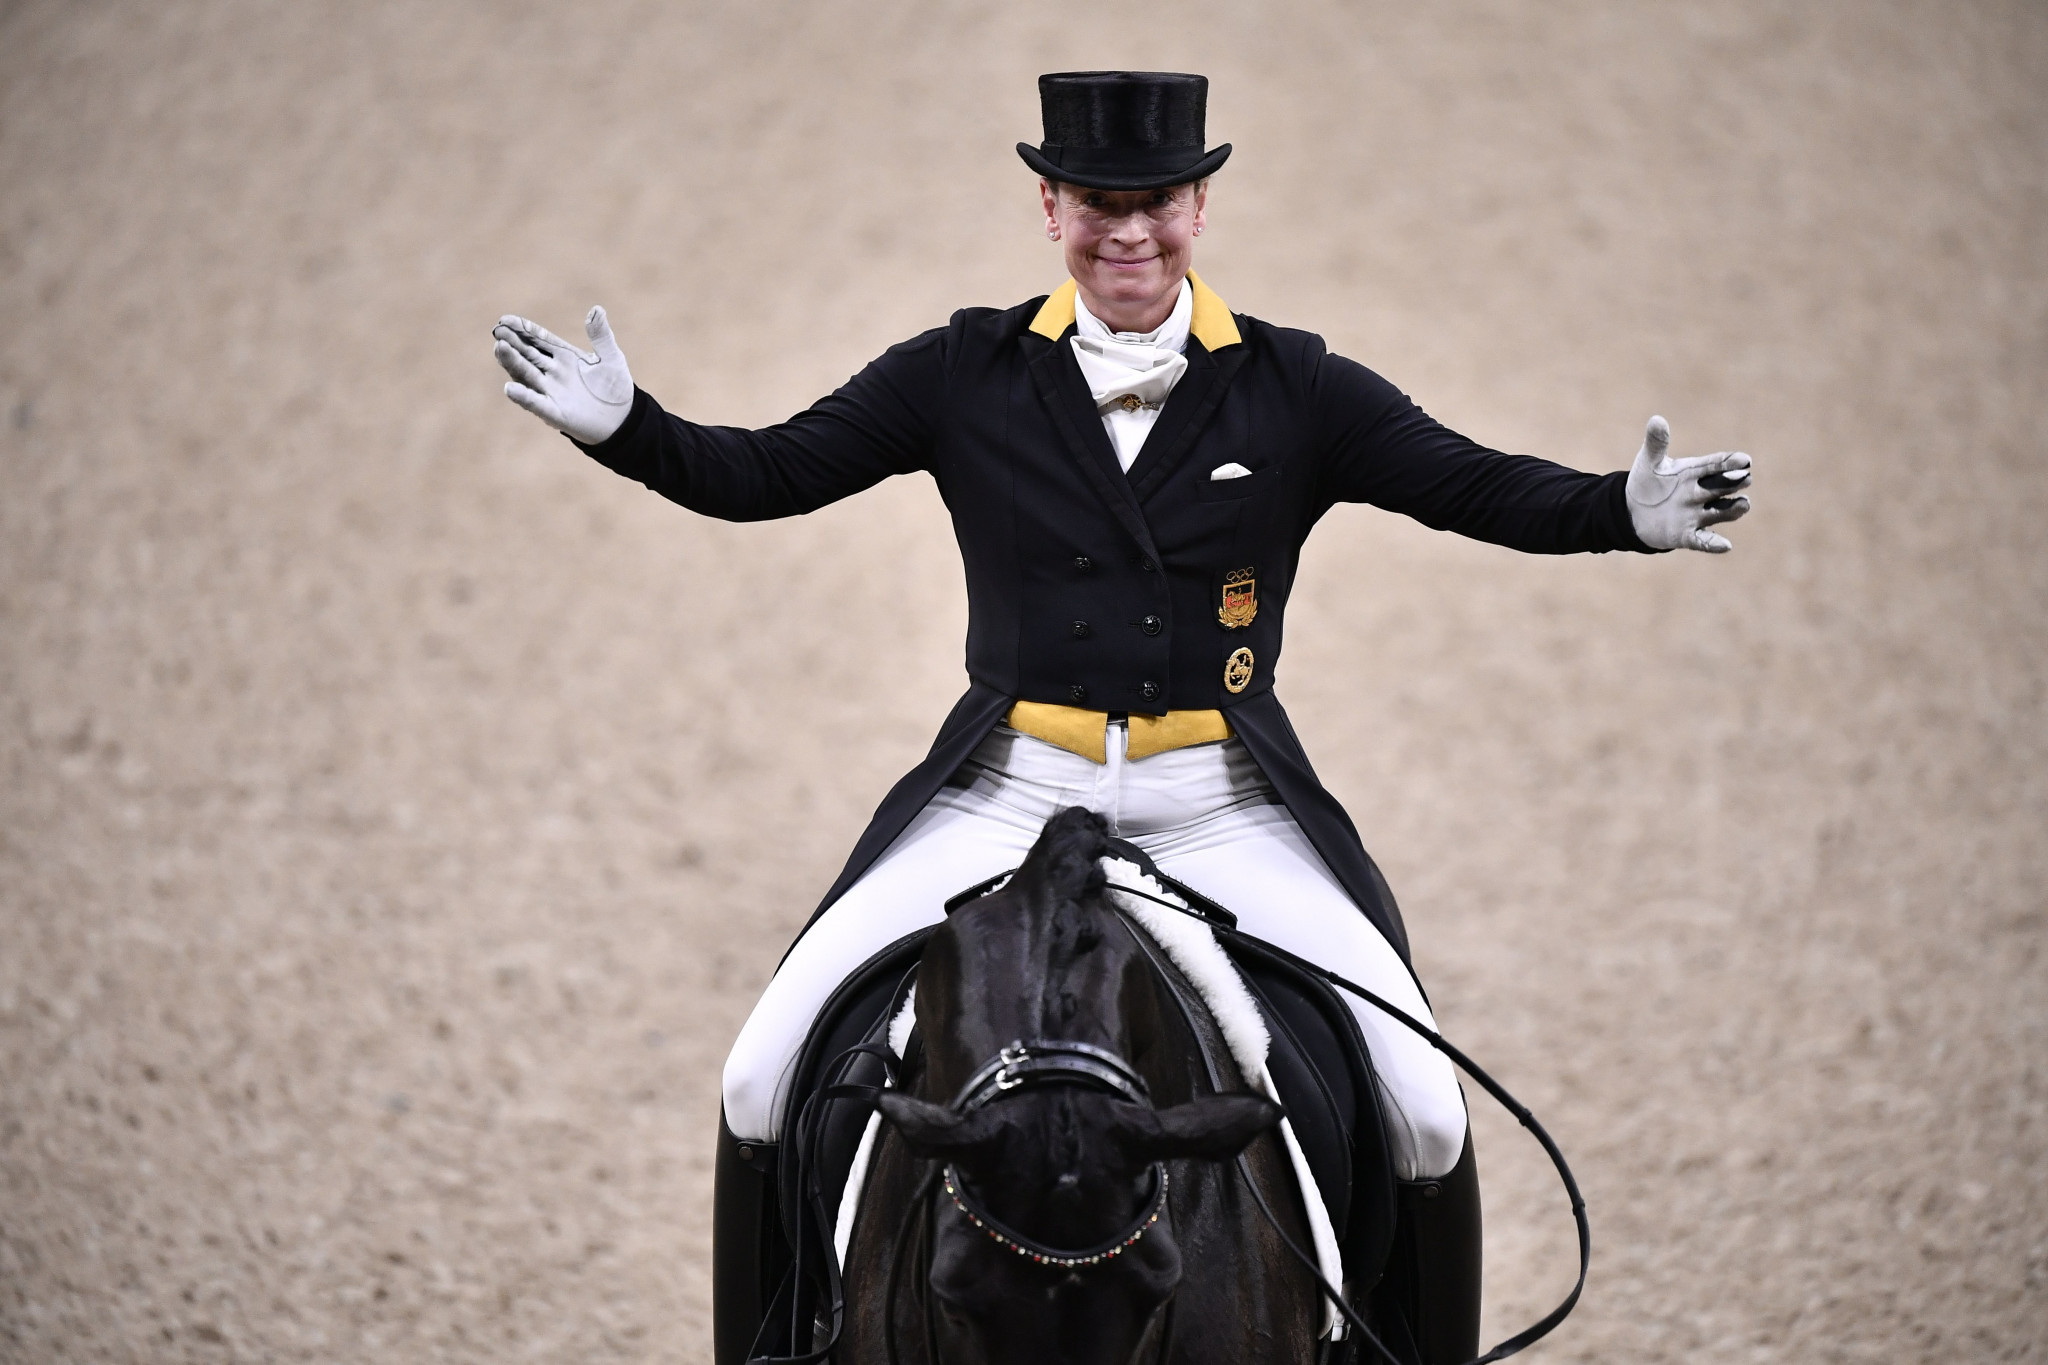 Werth in pole position for third successive FEI Dressage World Cup title after first-round win in Gothenburg